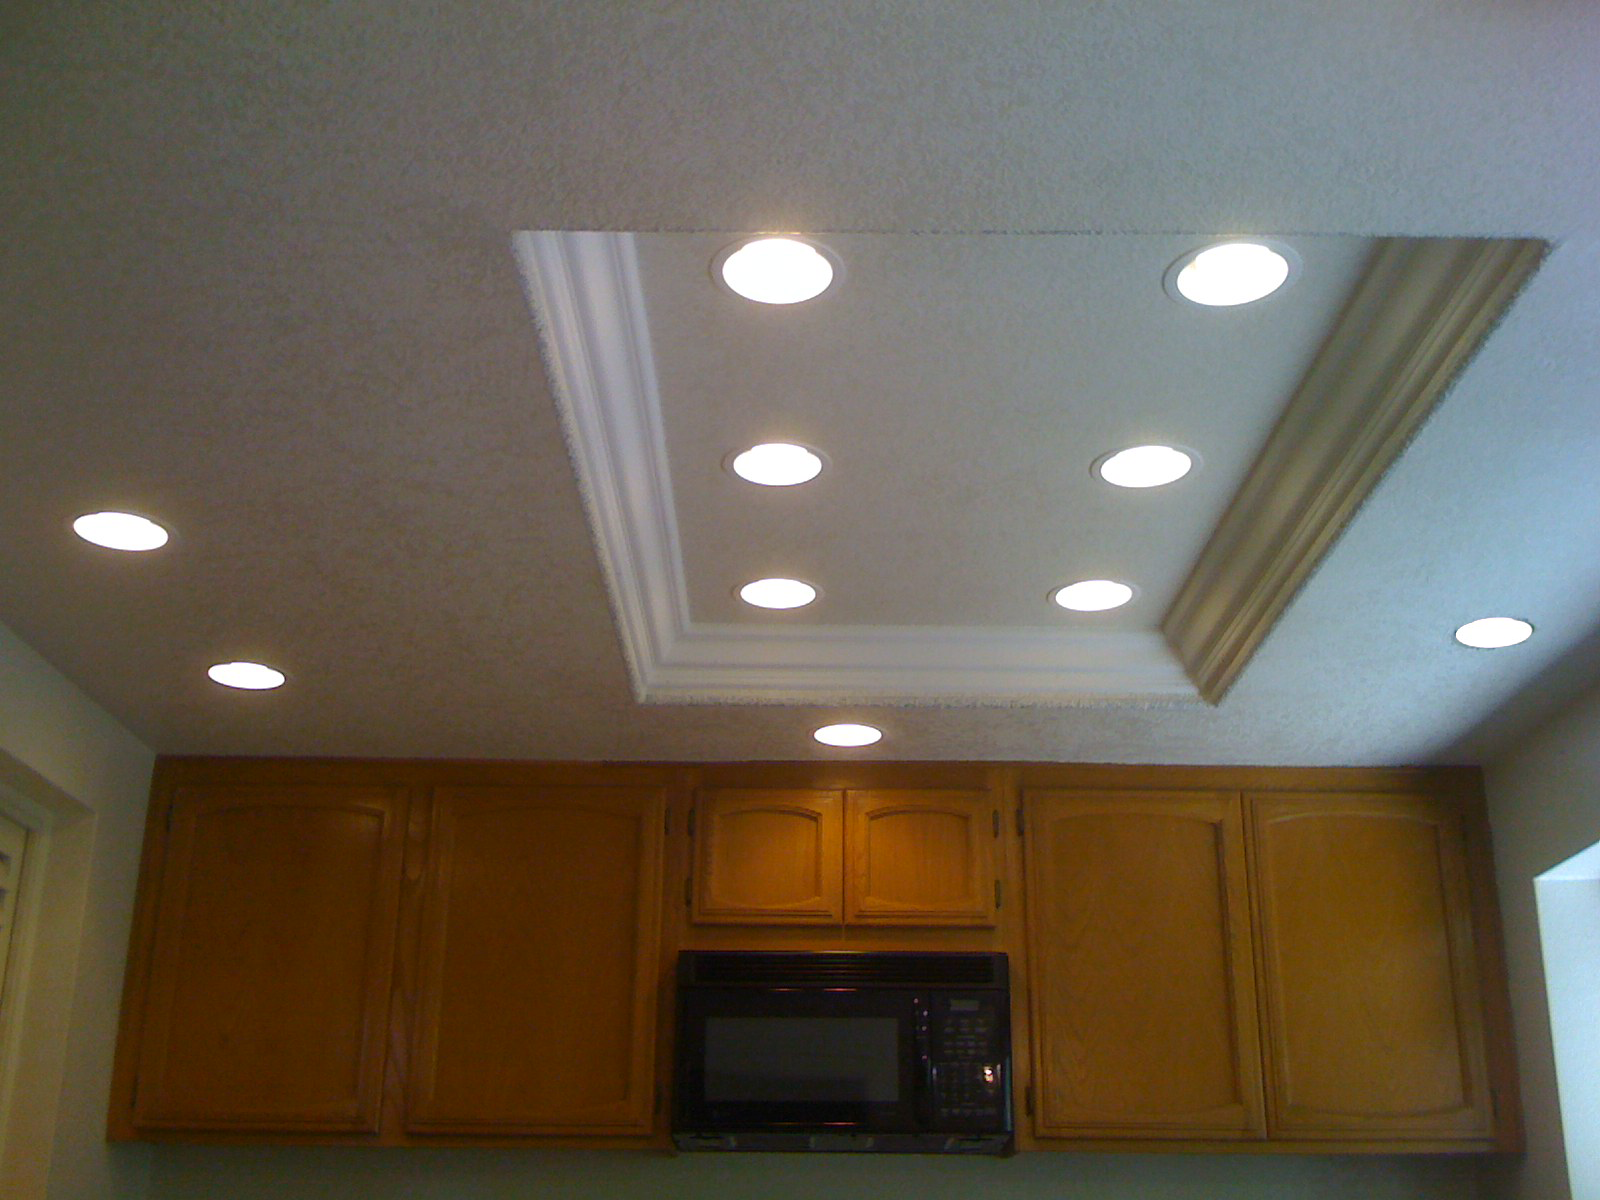 Good Idea For Replacing Fluorescent Light With Recessed Lighting In A Low  Kitchen Ceiling.